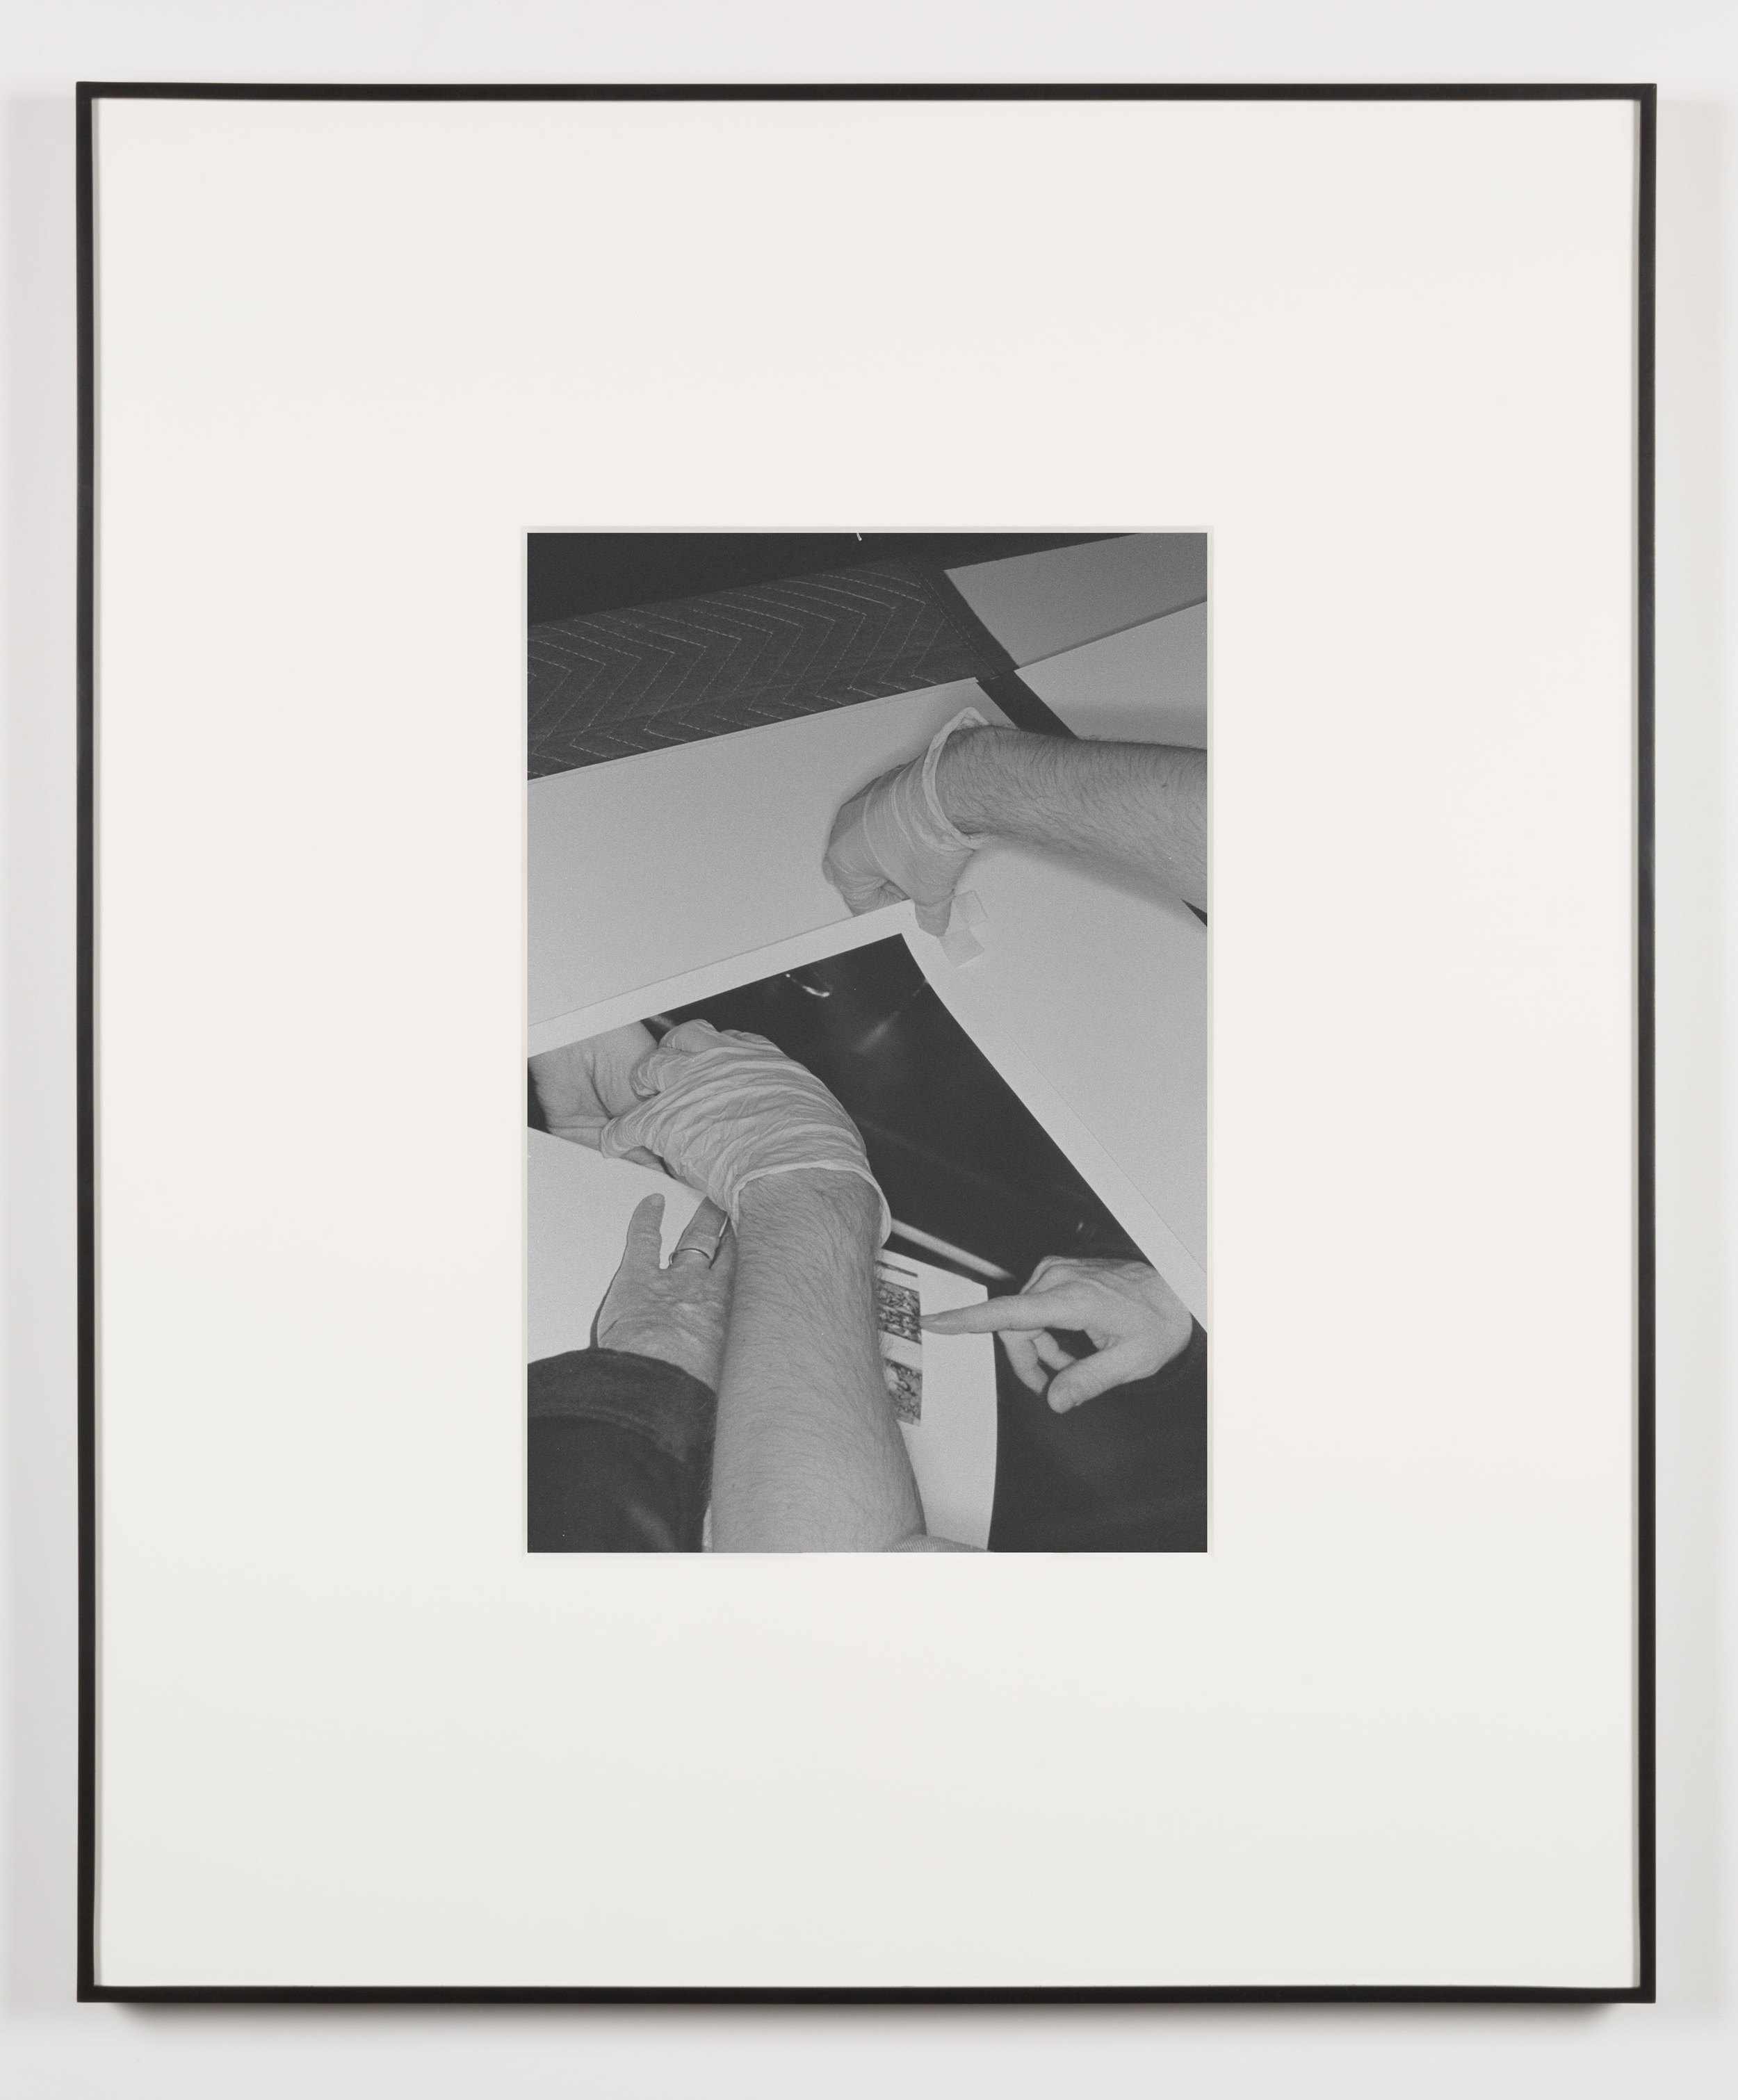 Die Qual der Lust (Los Angeles, California, August 15, 2013), Frame No. 14    2014   Black and white digital fiber print  20 x 13 1/2 inches   Art Handling, 2011–